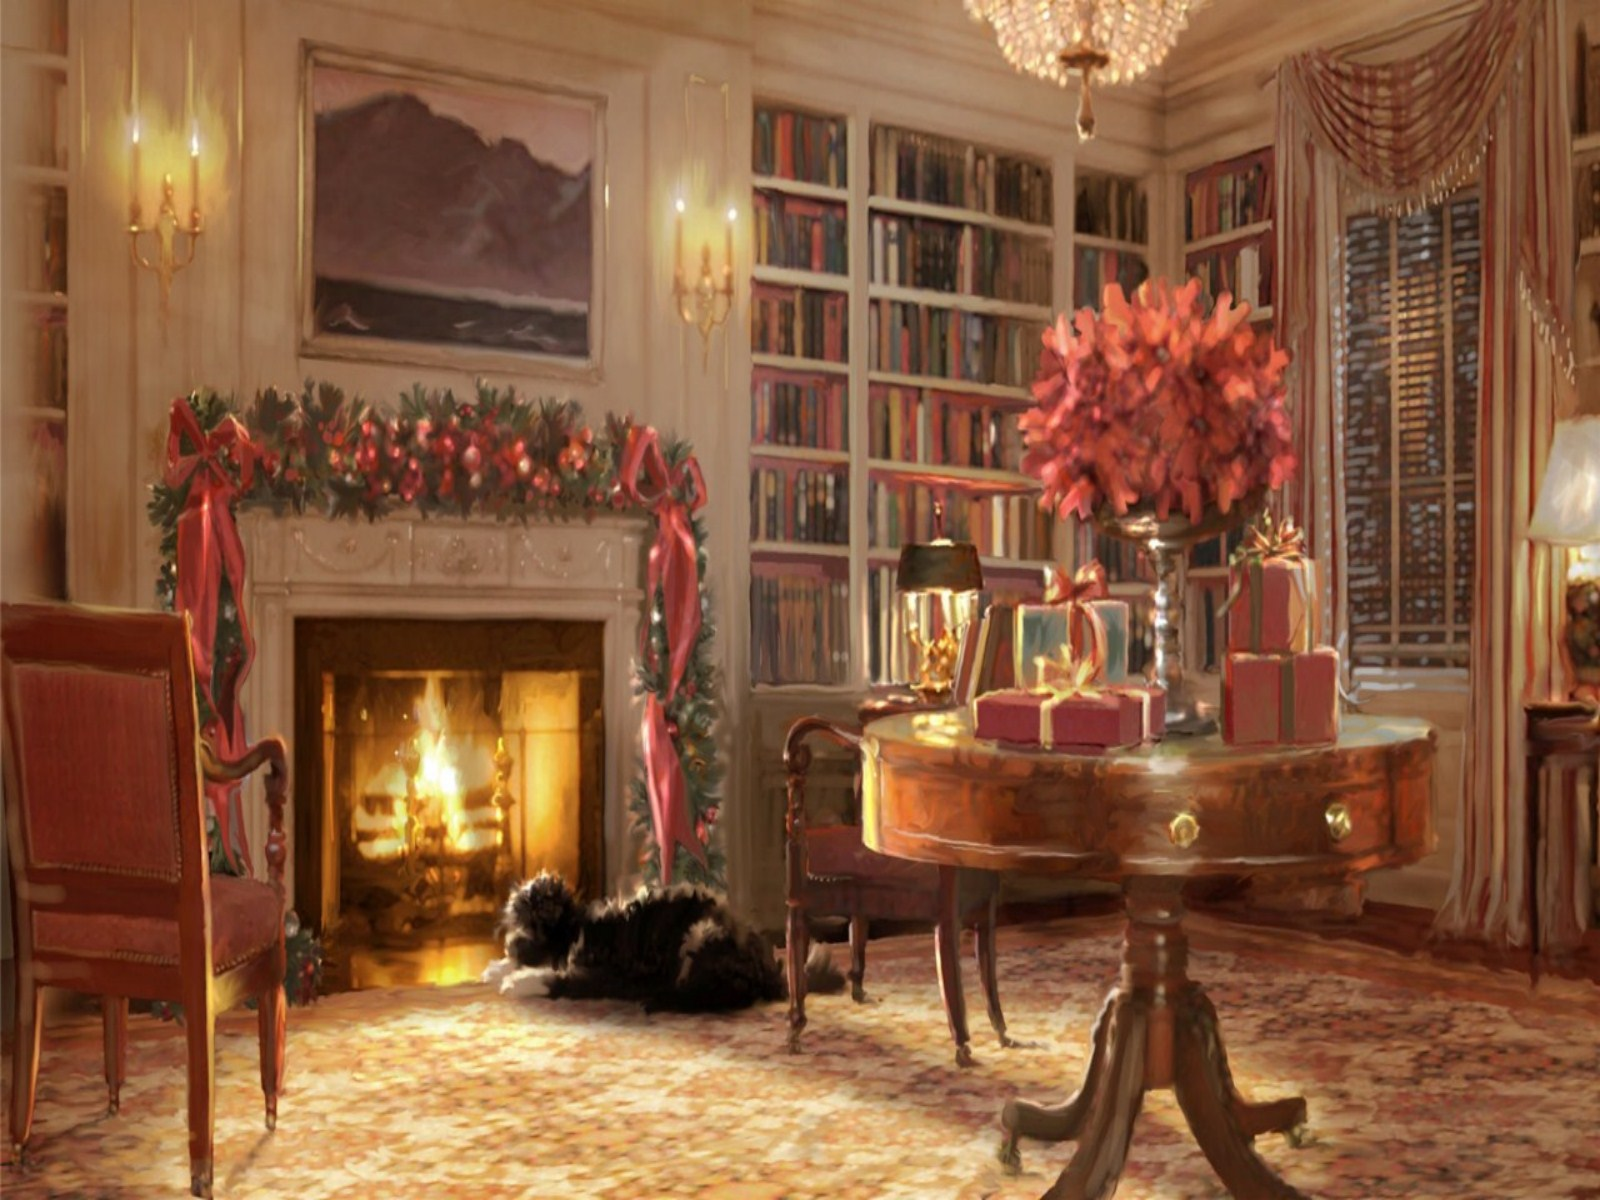 Christmas Fireplace Background Images amp Pictures   Becuo 1600x1200